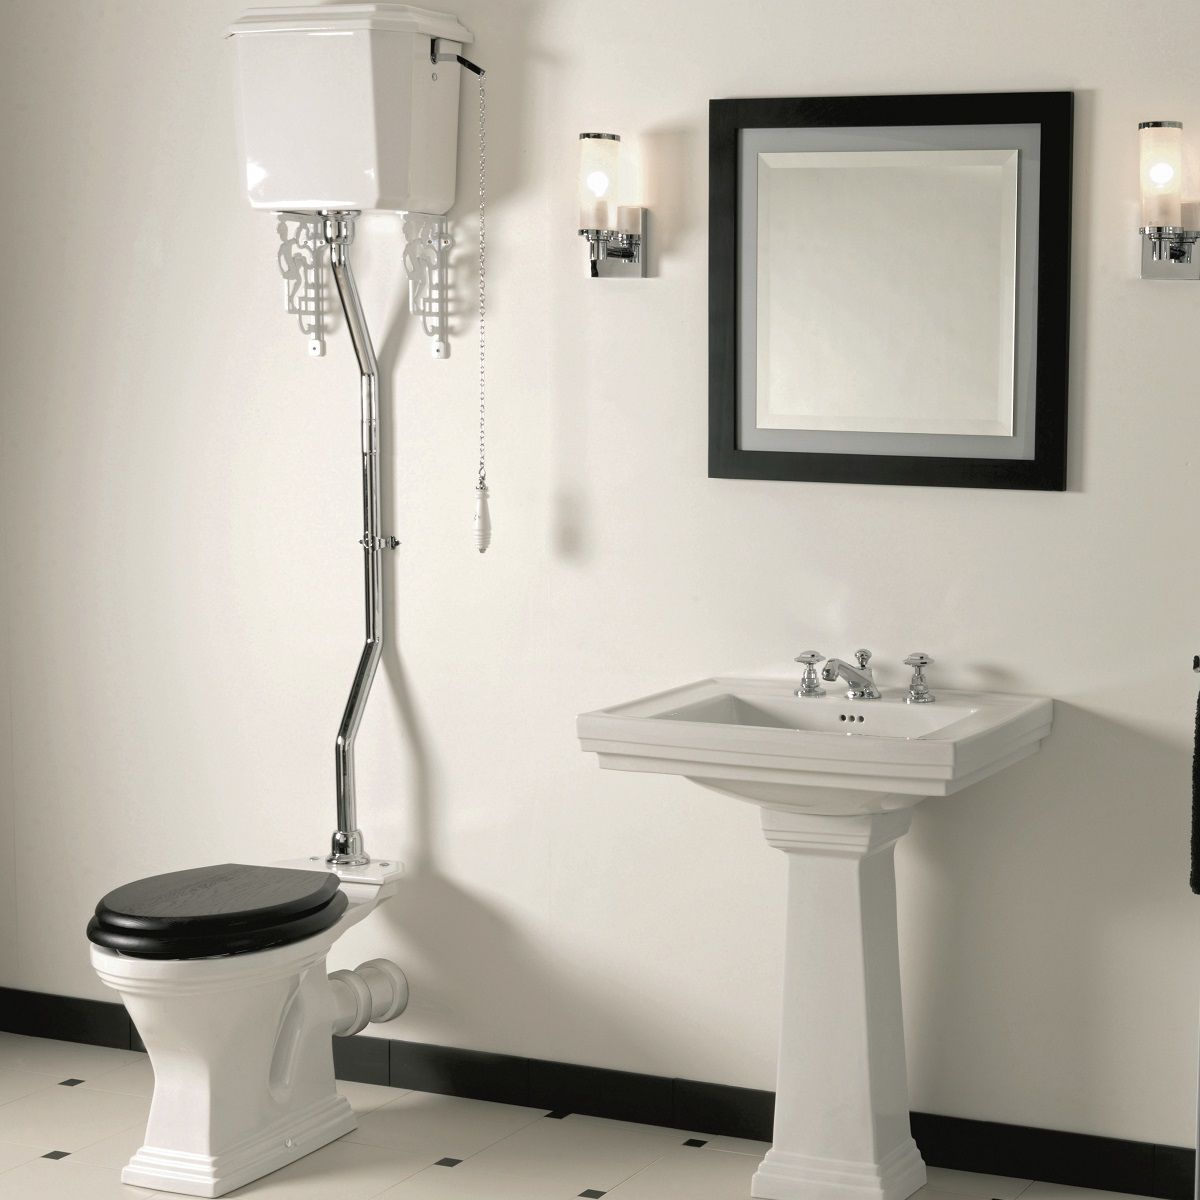 Imperial Astoria Deco Pan Amp High Level Cistern Uk Bathrooms